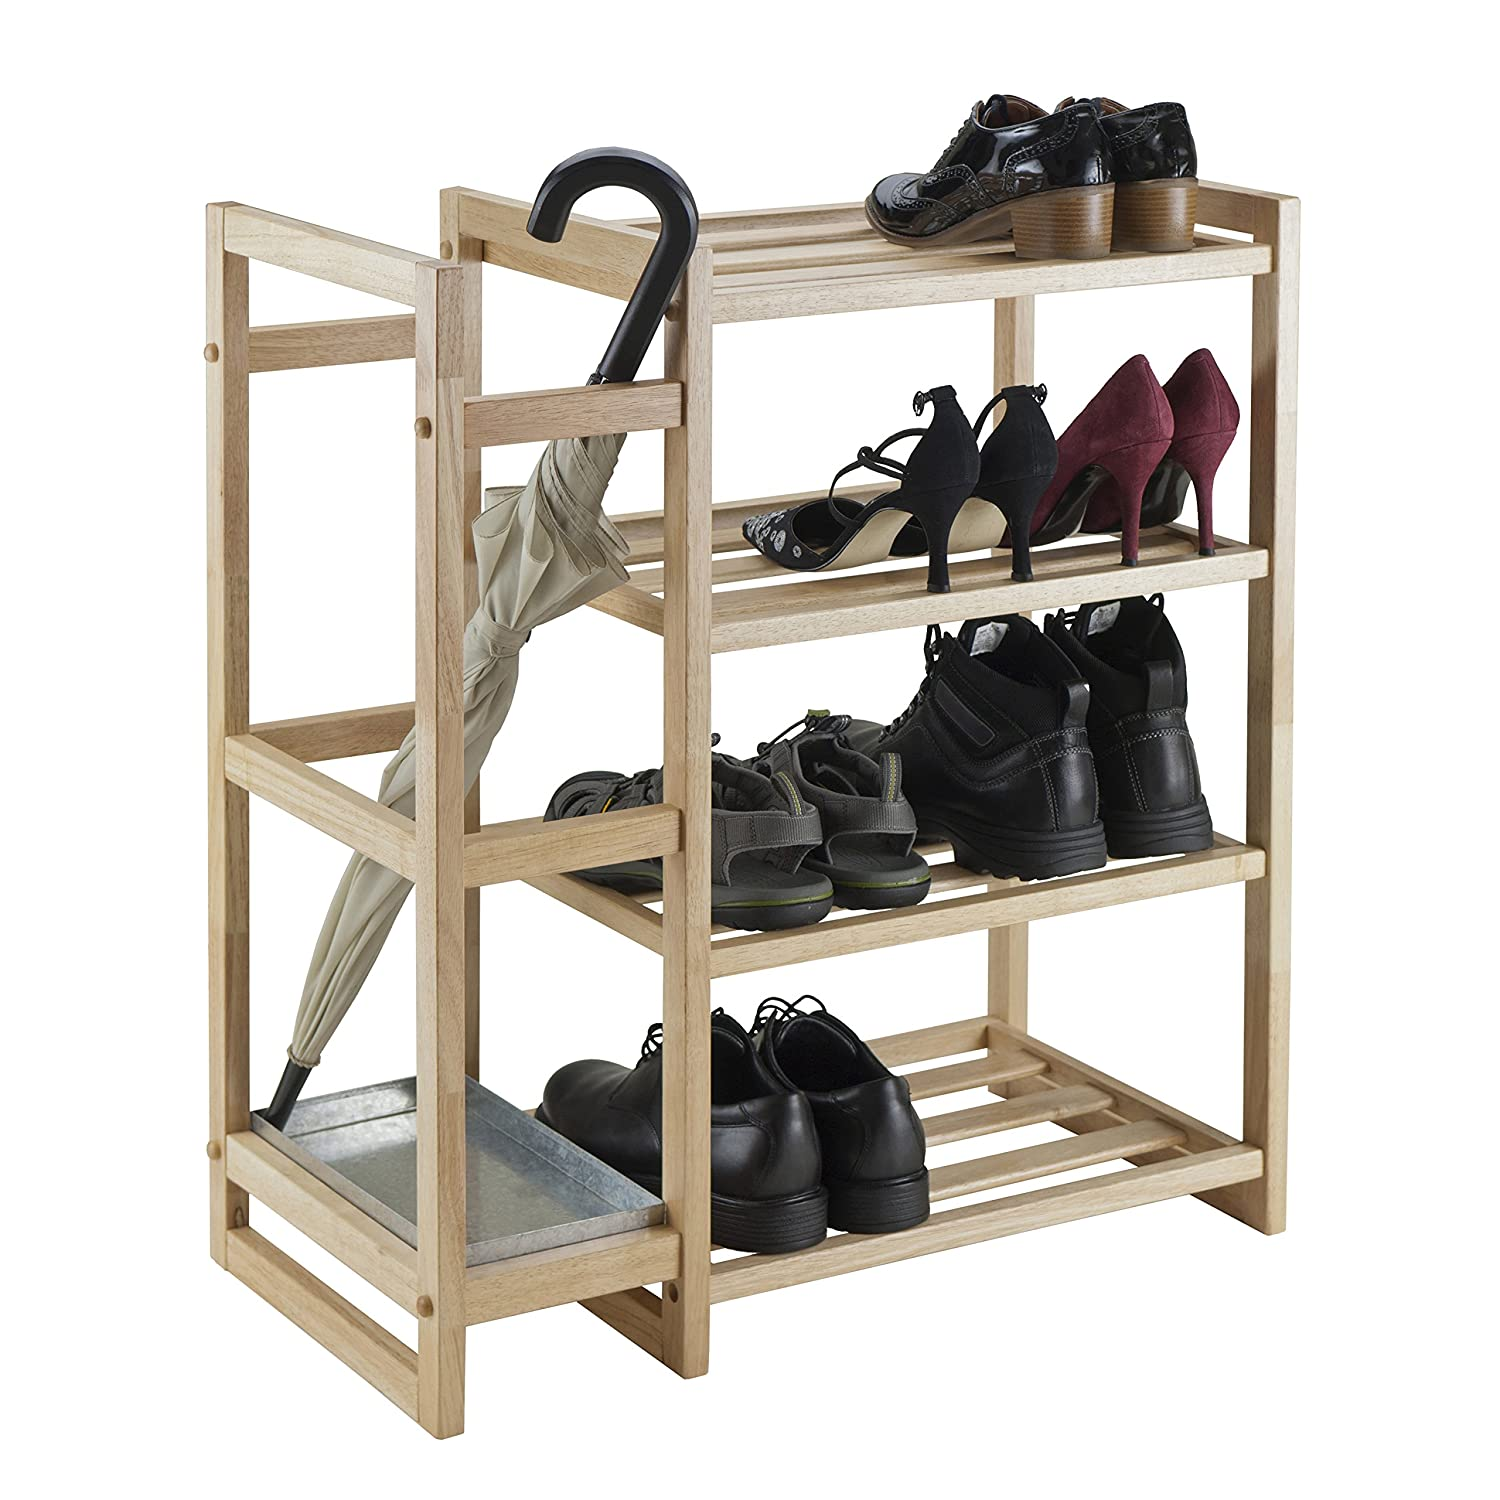 amazoncom winsome wood isabel shoe rack with umbrella stand and tray black finish home u0026 kitchen